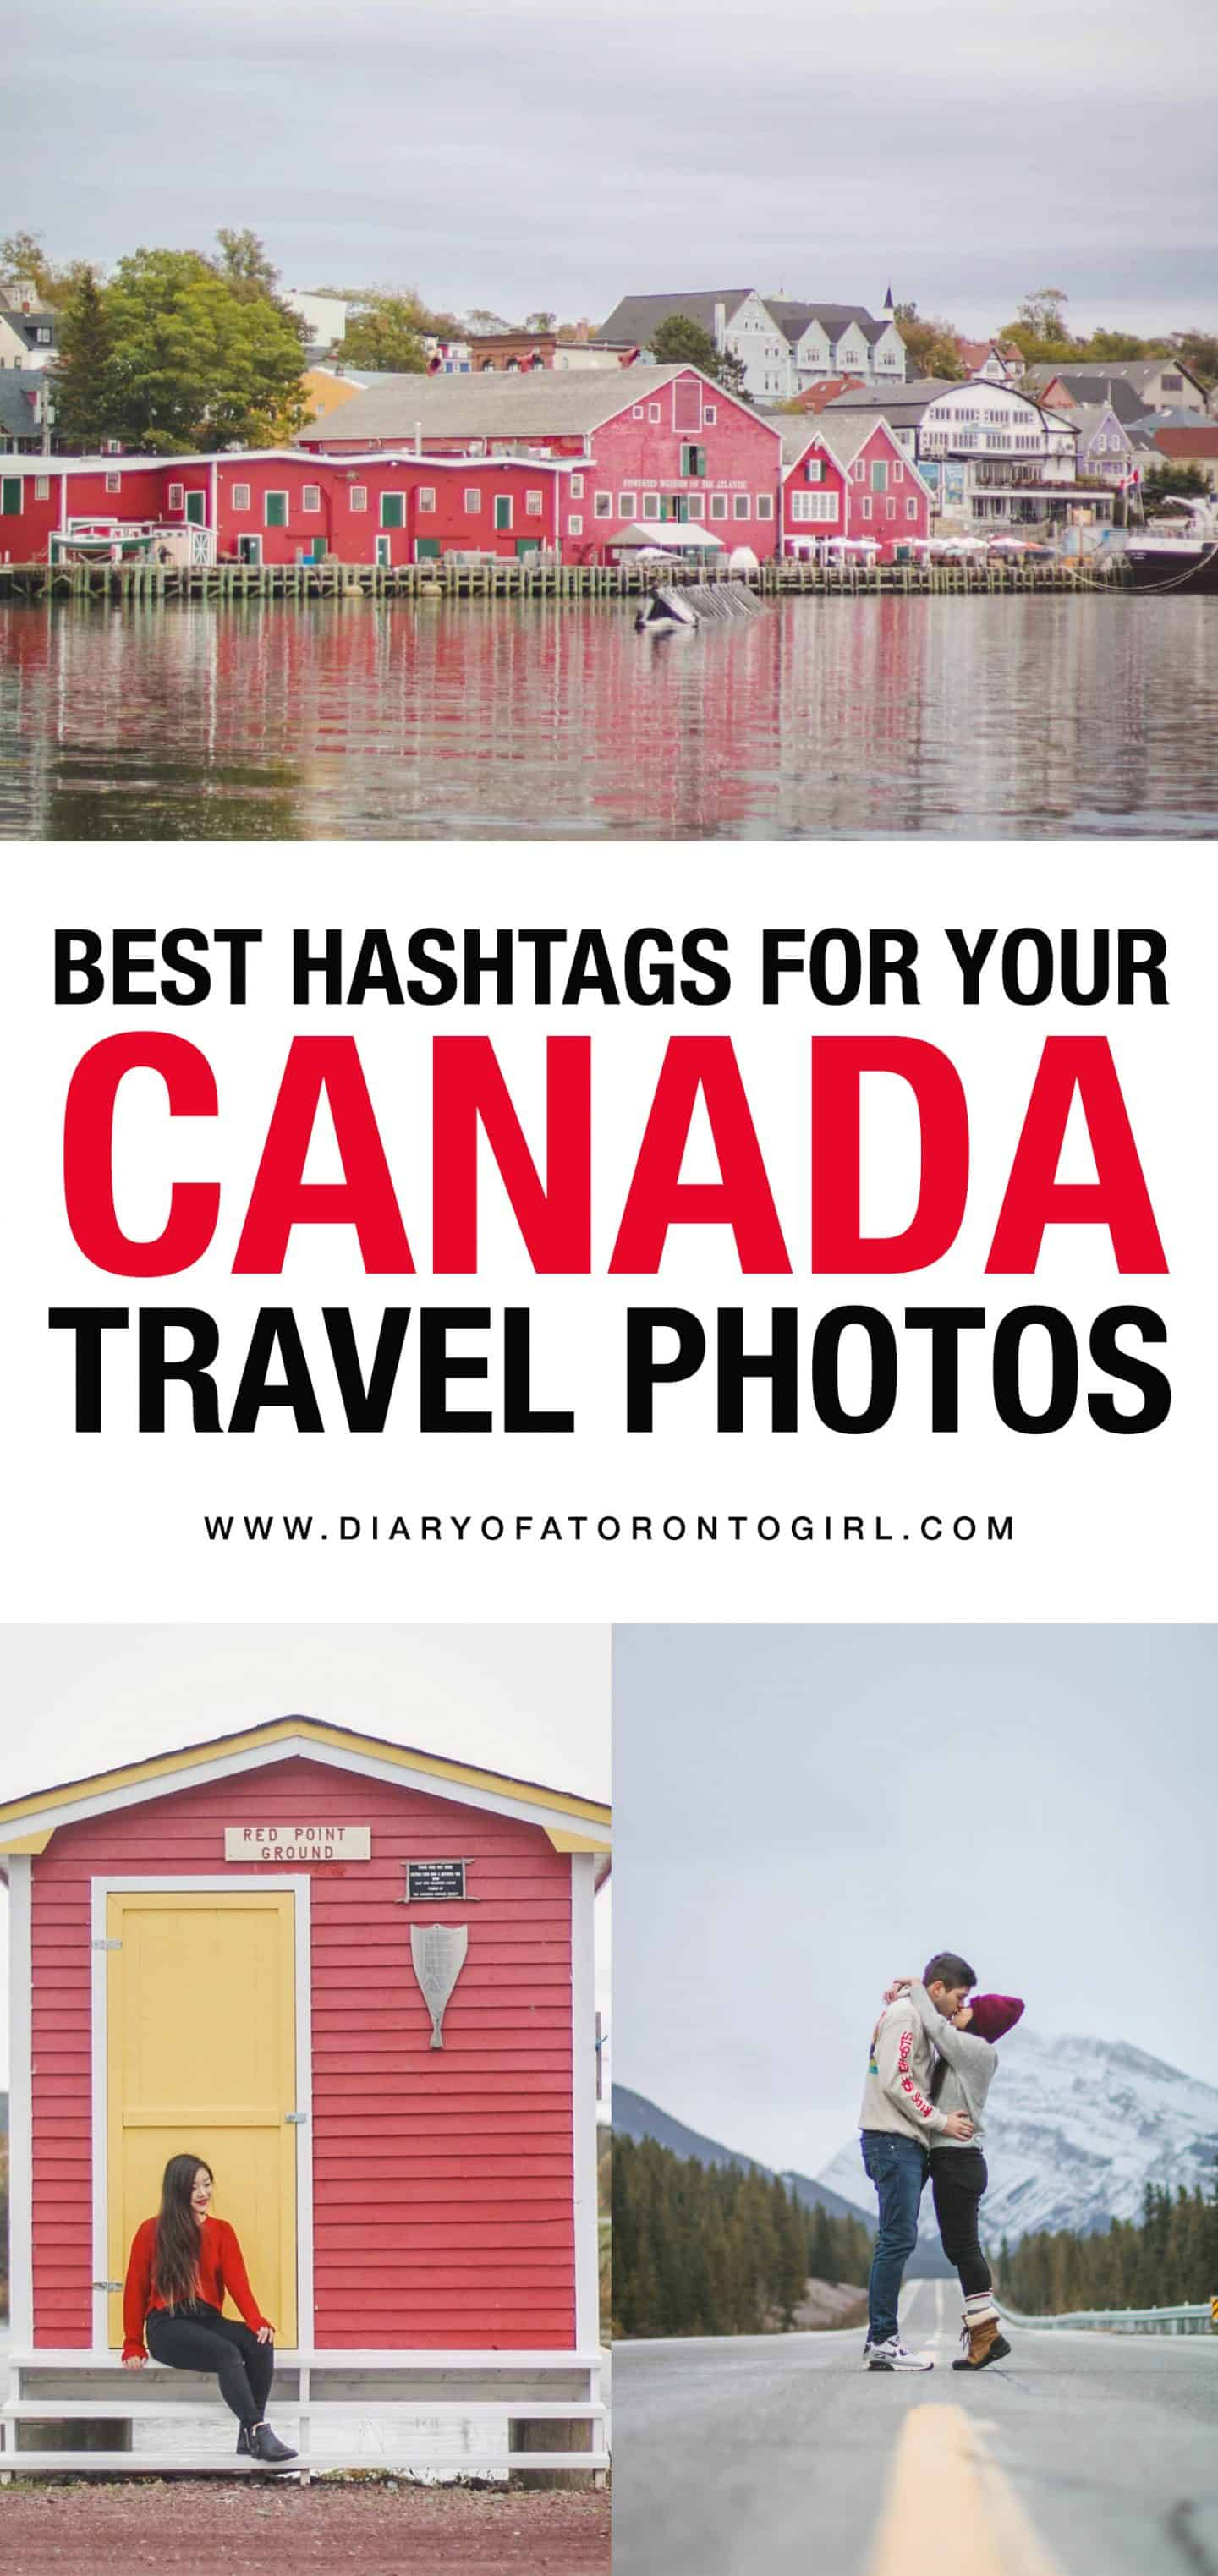 The best Instagram hashtags to use for your Canadian travel photos, in case you're planning a visit to any provinces or territories in Canada!